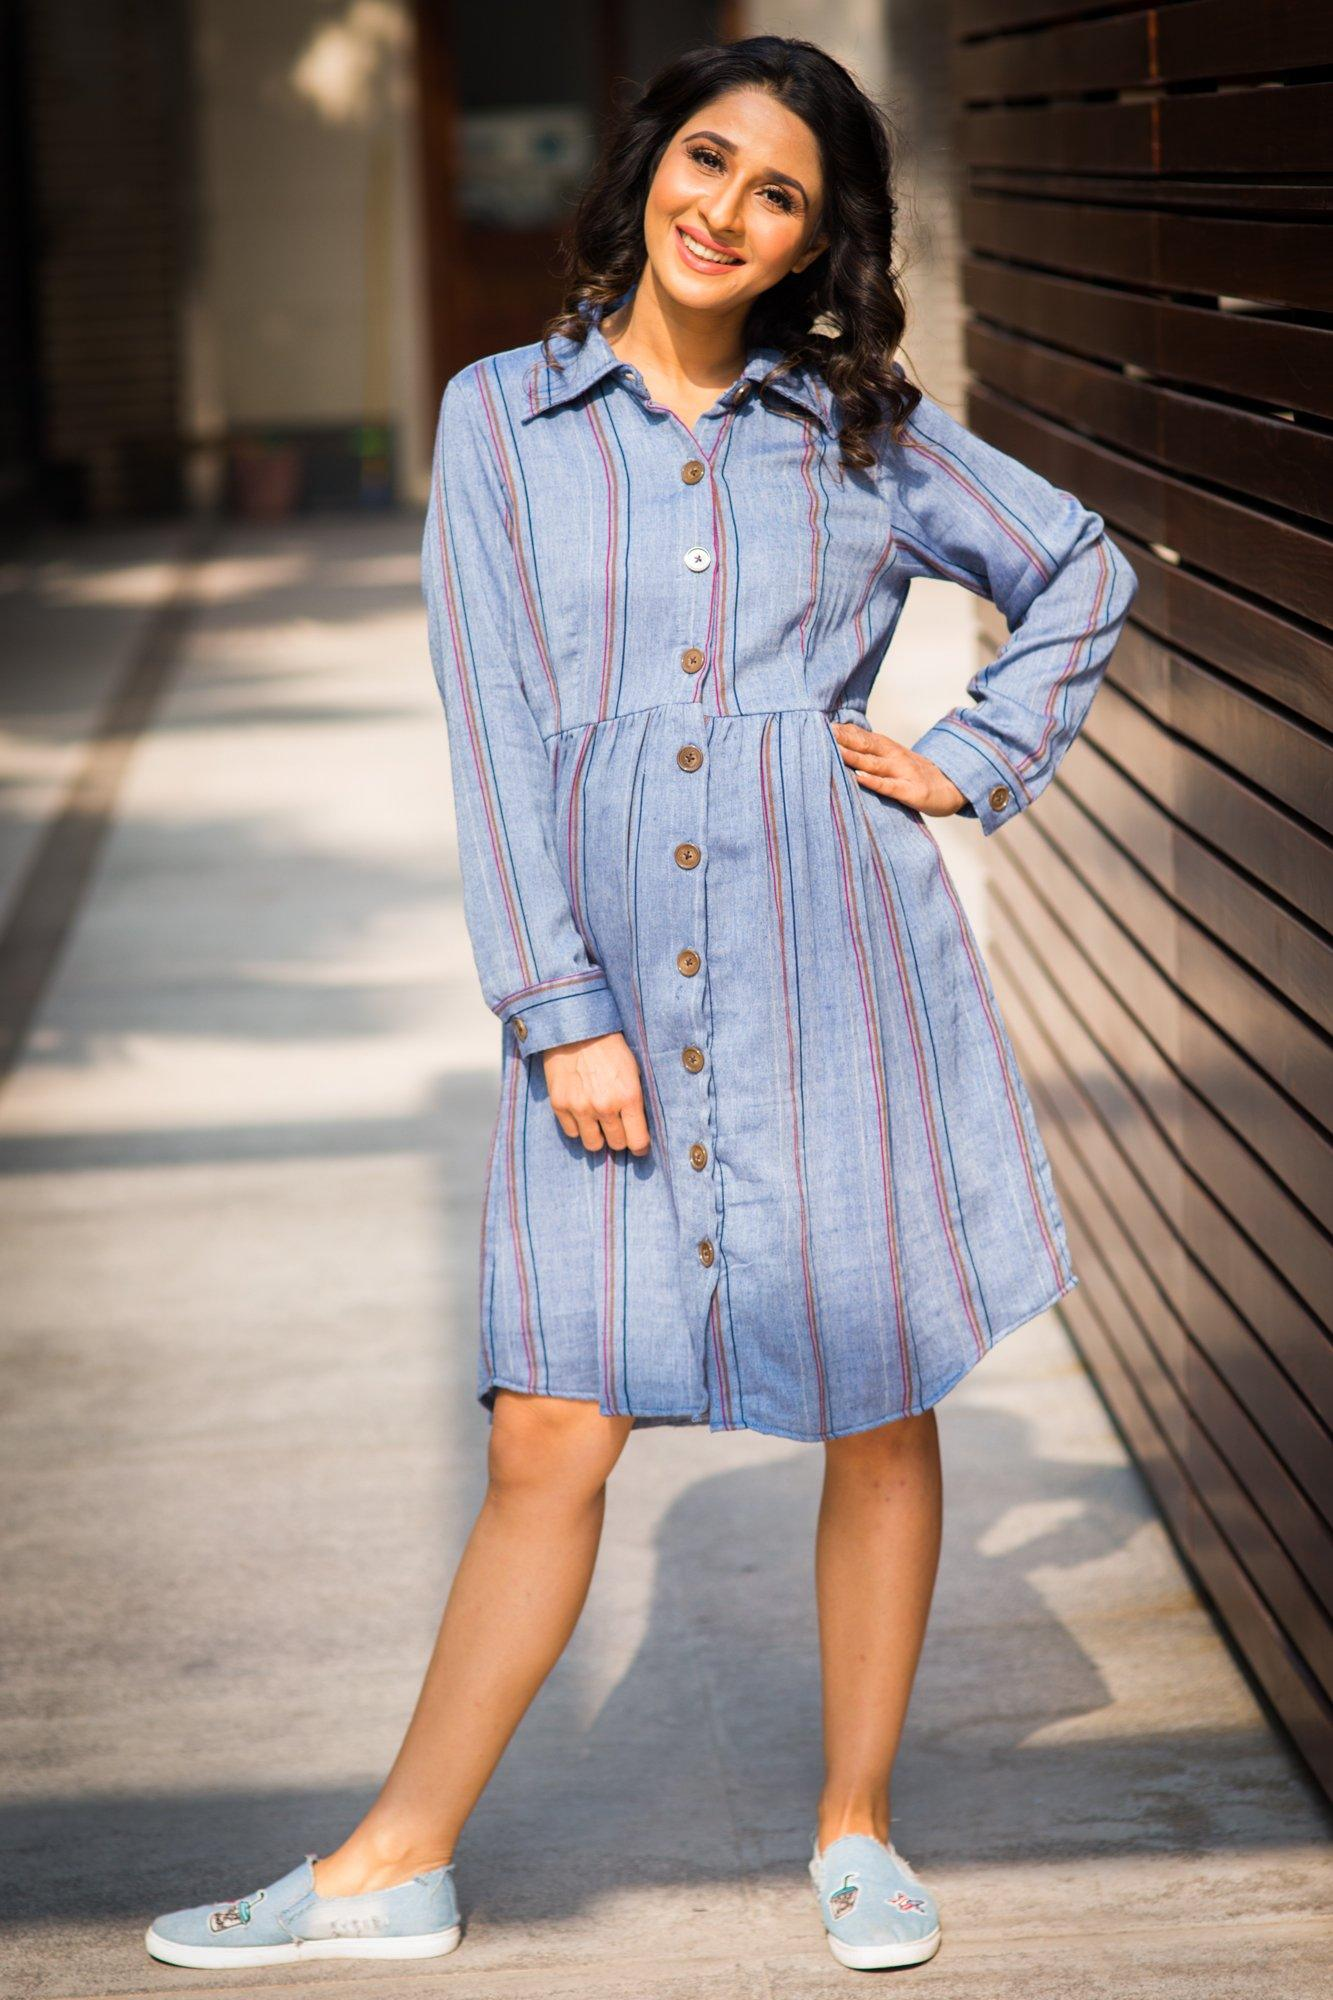 Buy online momzjoy maternity dresses pregnancy wear nursing clothes gathered denim stripe versatile maternity nursing shirt dress ombrellifo Image collections